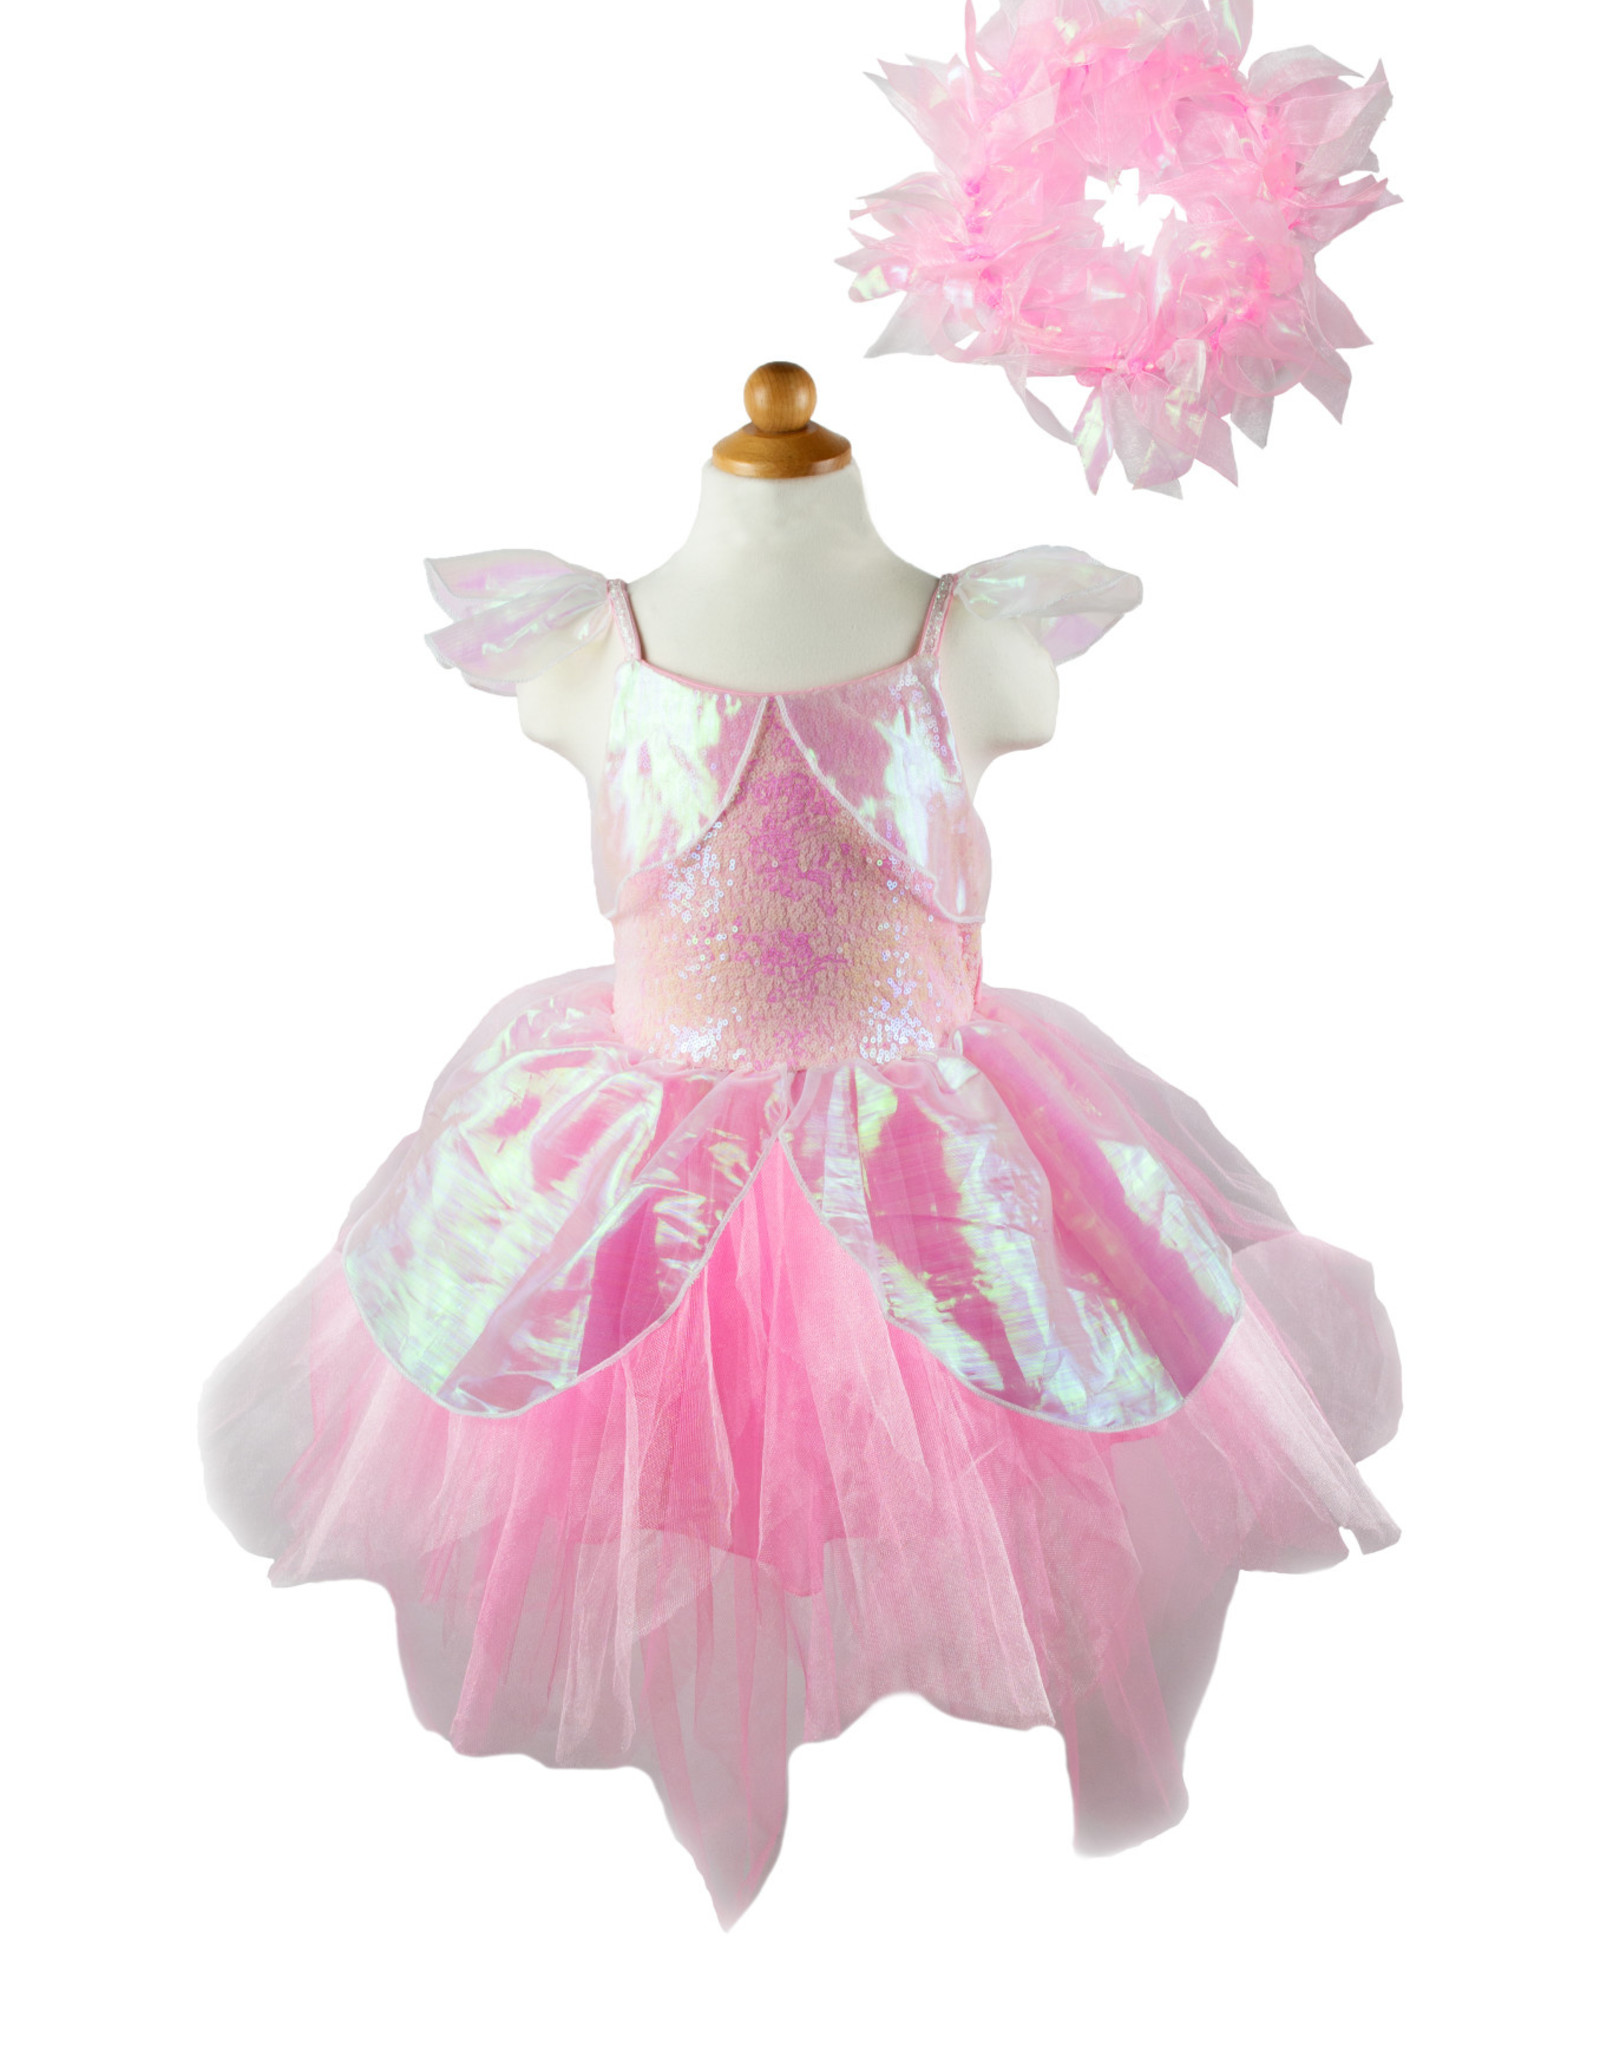 Great Pretenders Iridescent Fairy Dress with Halo, Size 5-6